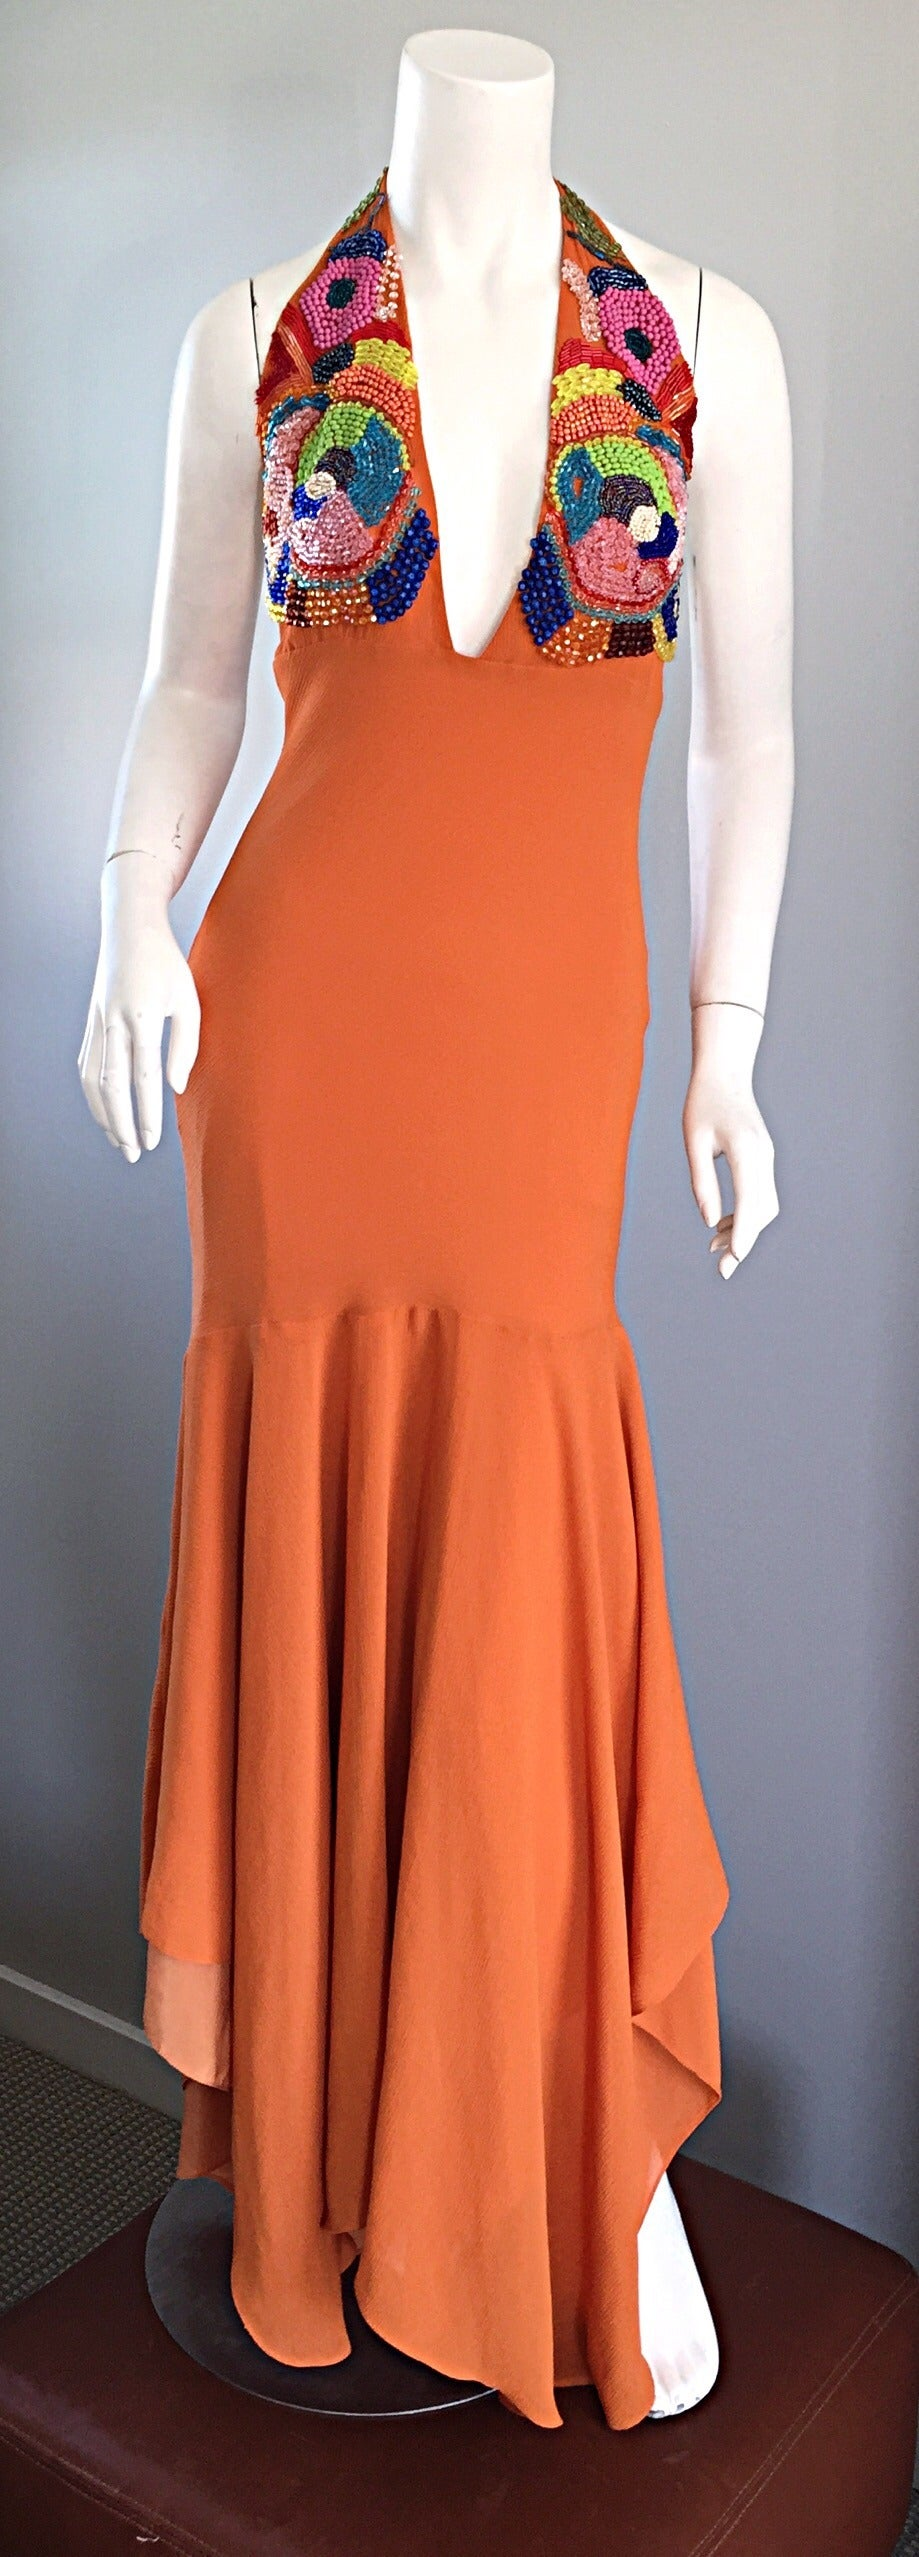 Sexy 90s vintage beaded halter gown / maxi dress!! Orange silk crepe material, that literally flows when on the body! Intricate beaded bodice. Halter style neck. Asymmetrical hem. A definite head turner, that looks amazing on the dance floor.